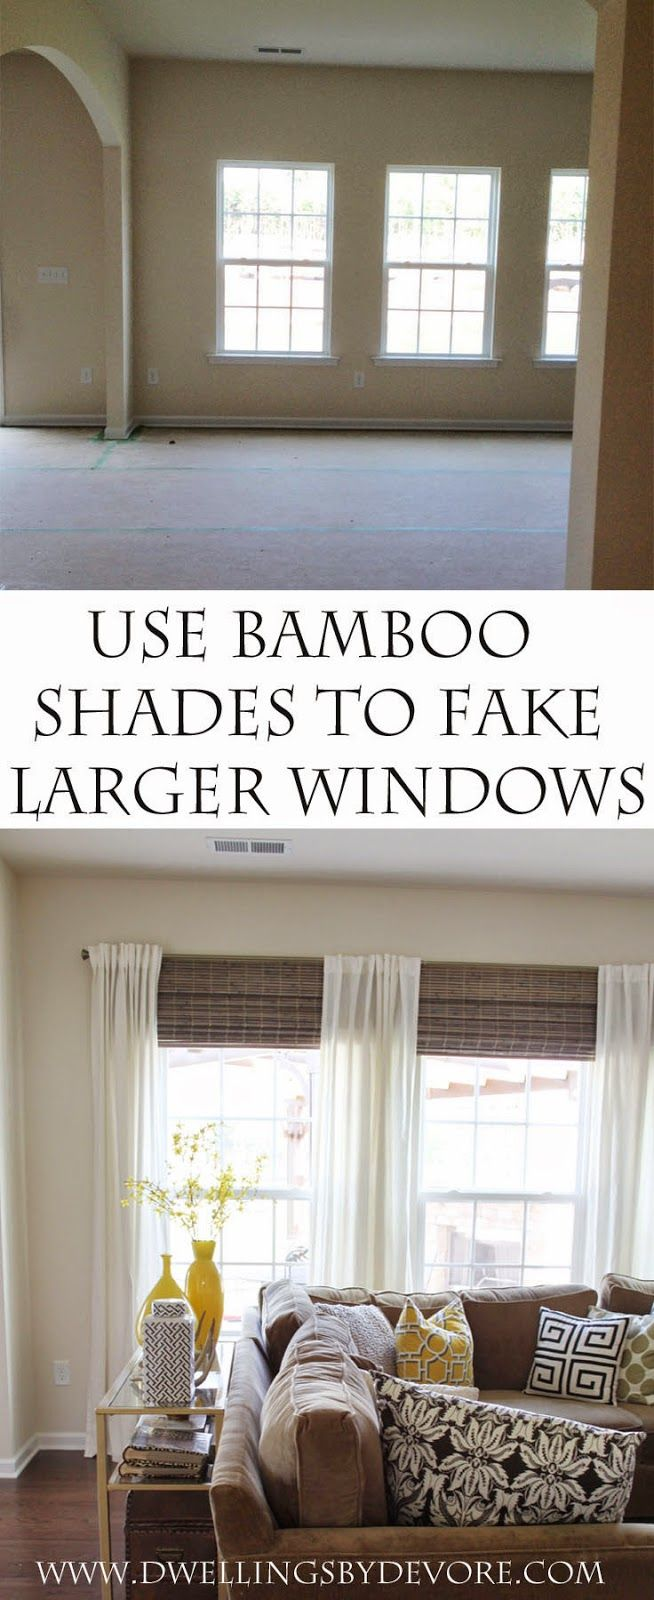 how to make living room curtains diy built in shelves so smart use bamboo shades strategically placed your windows look larger